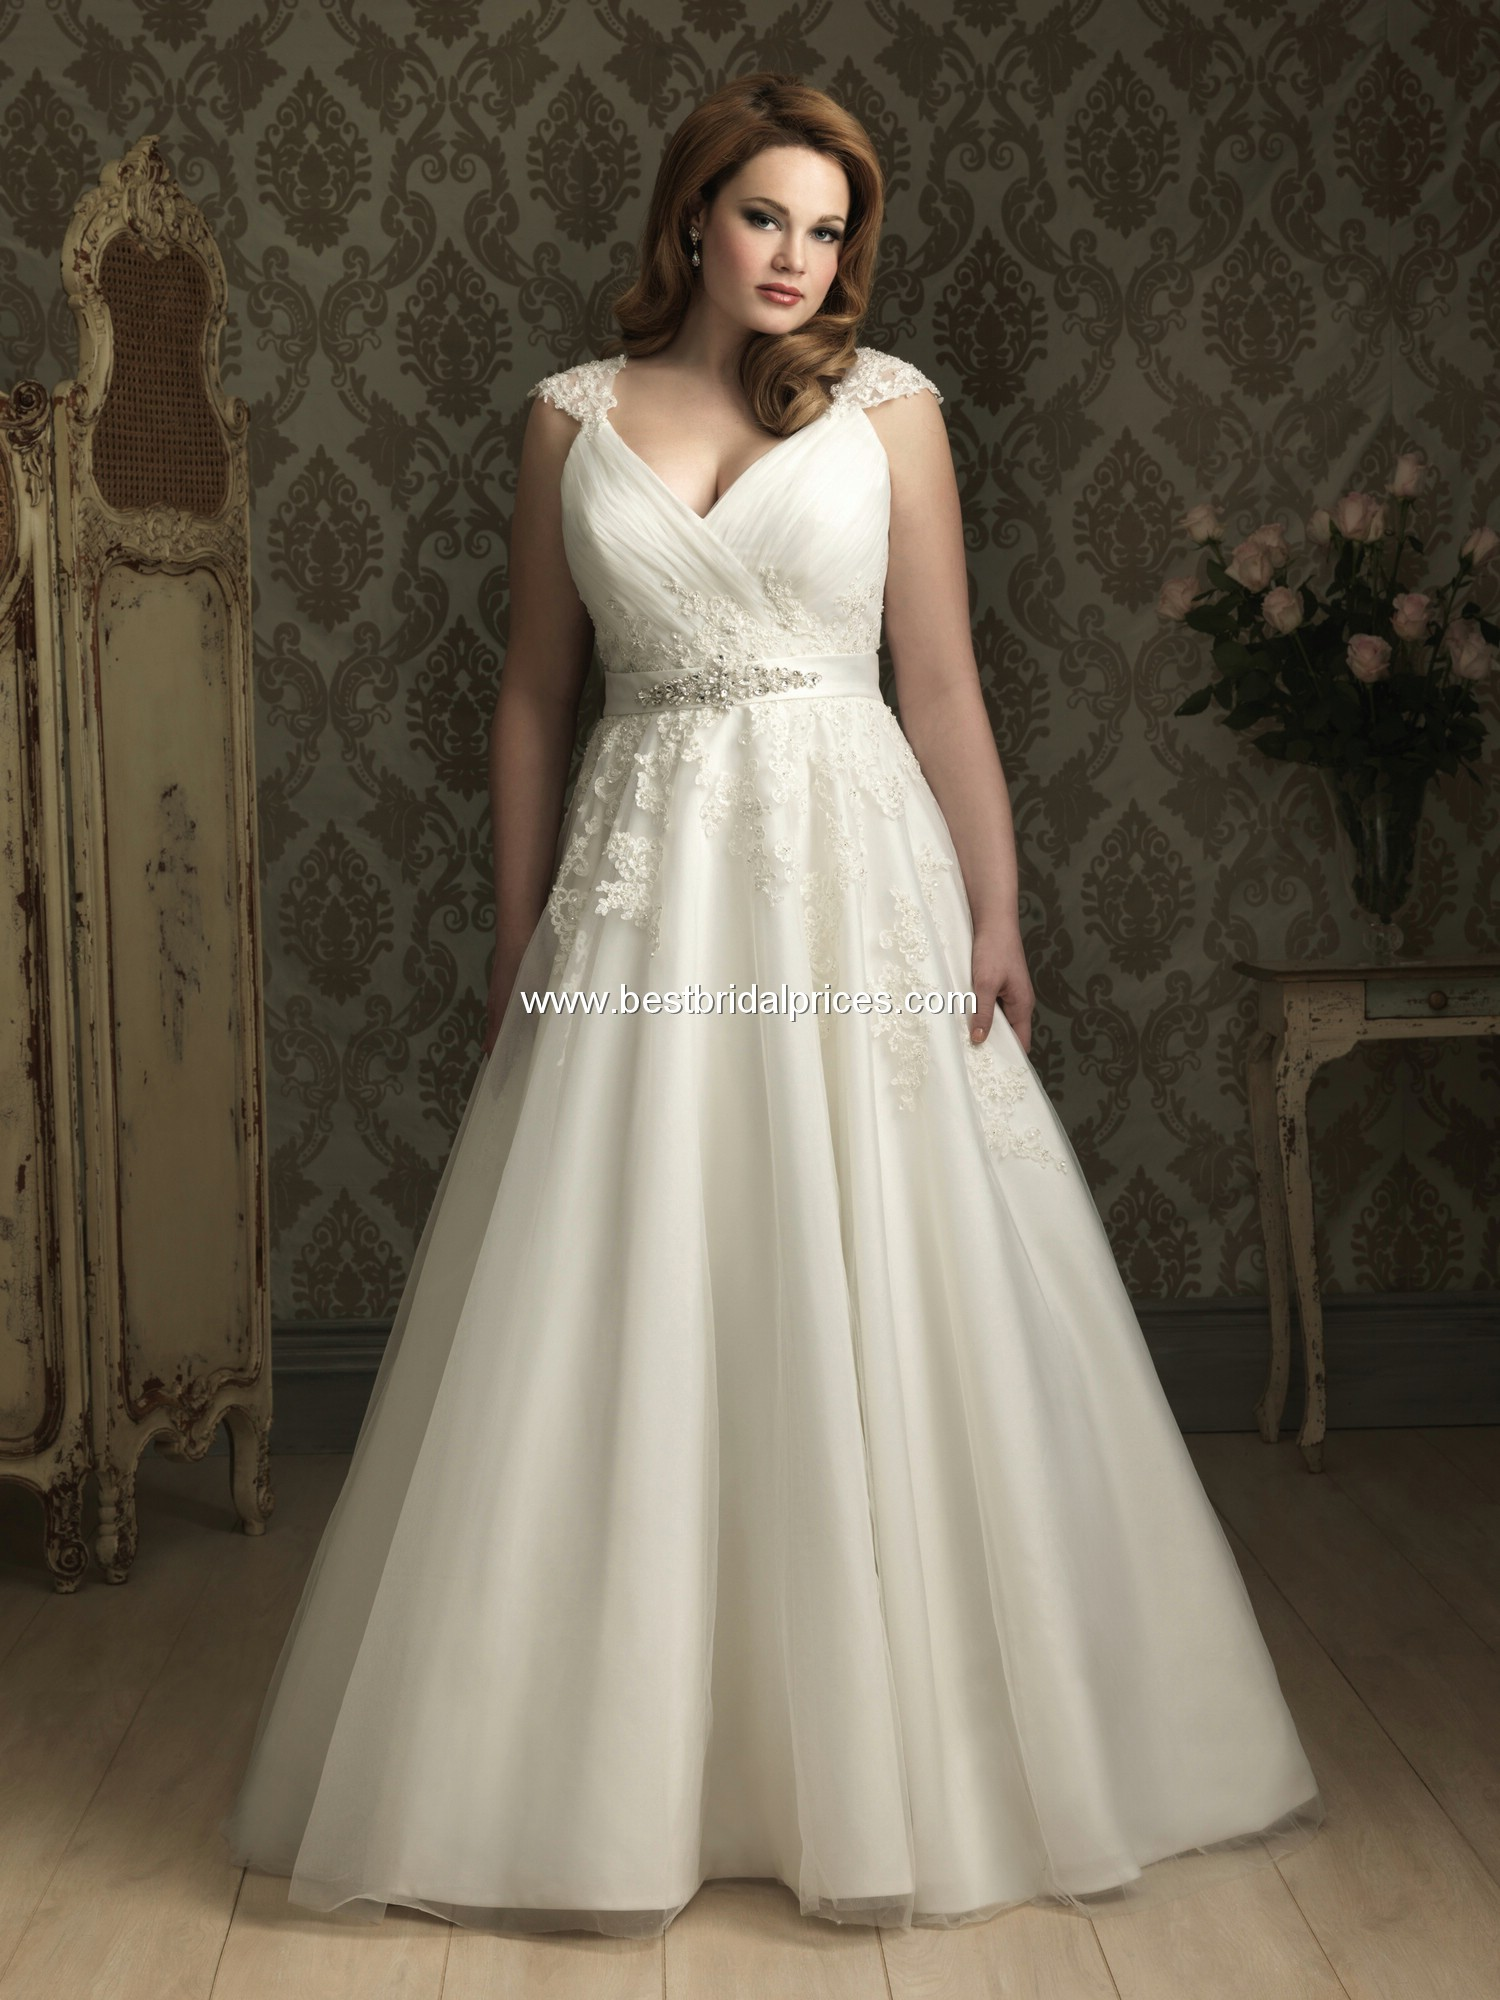 Beautiful Plus Size Wedding Dress Online Gallery - Mikejaninesmith ...